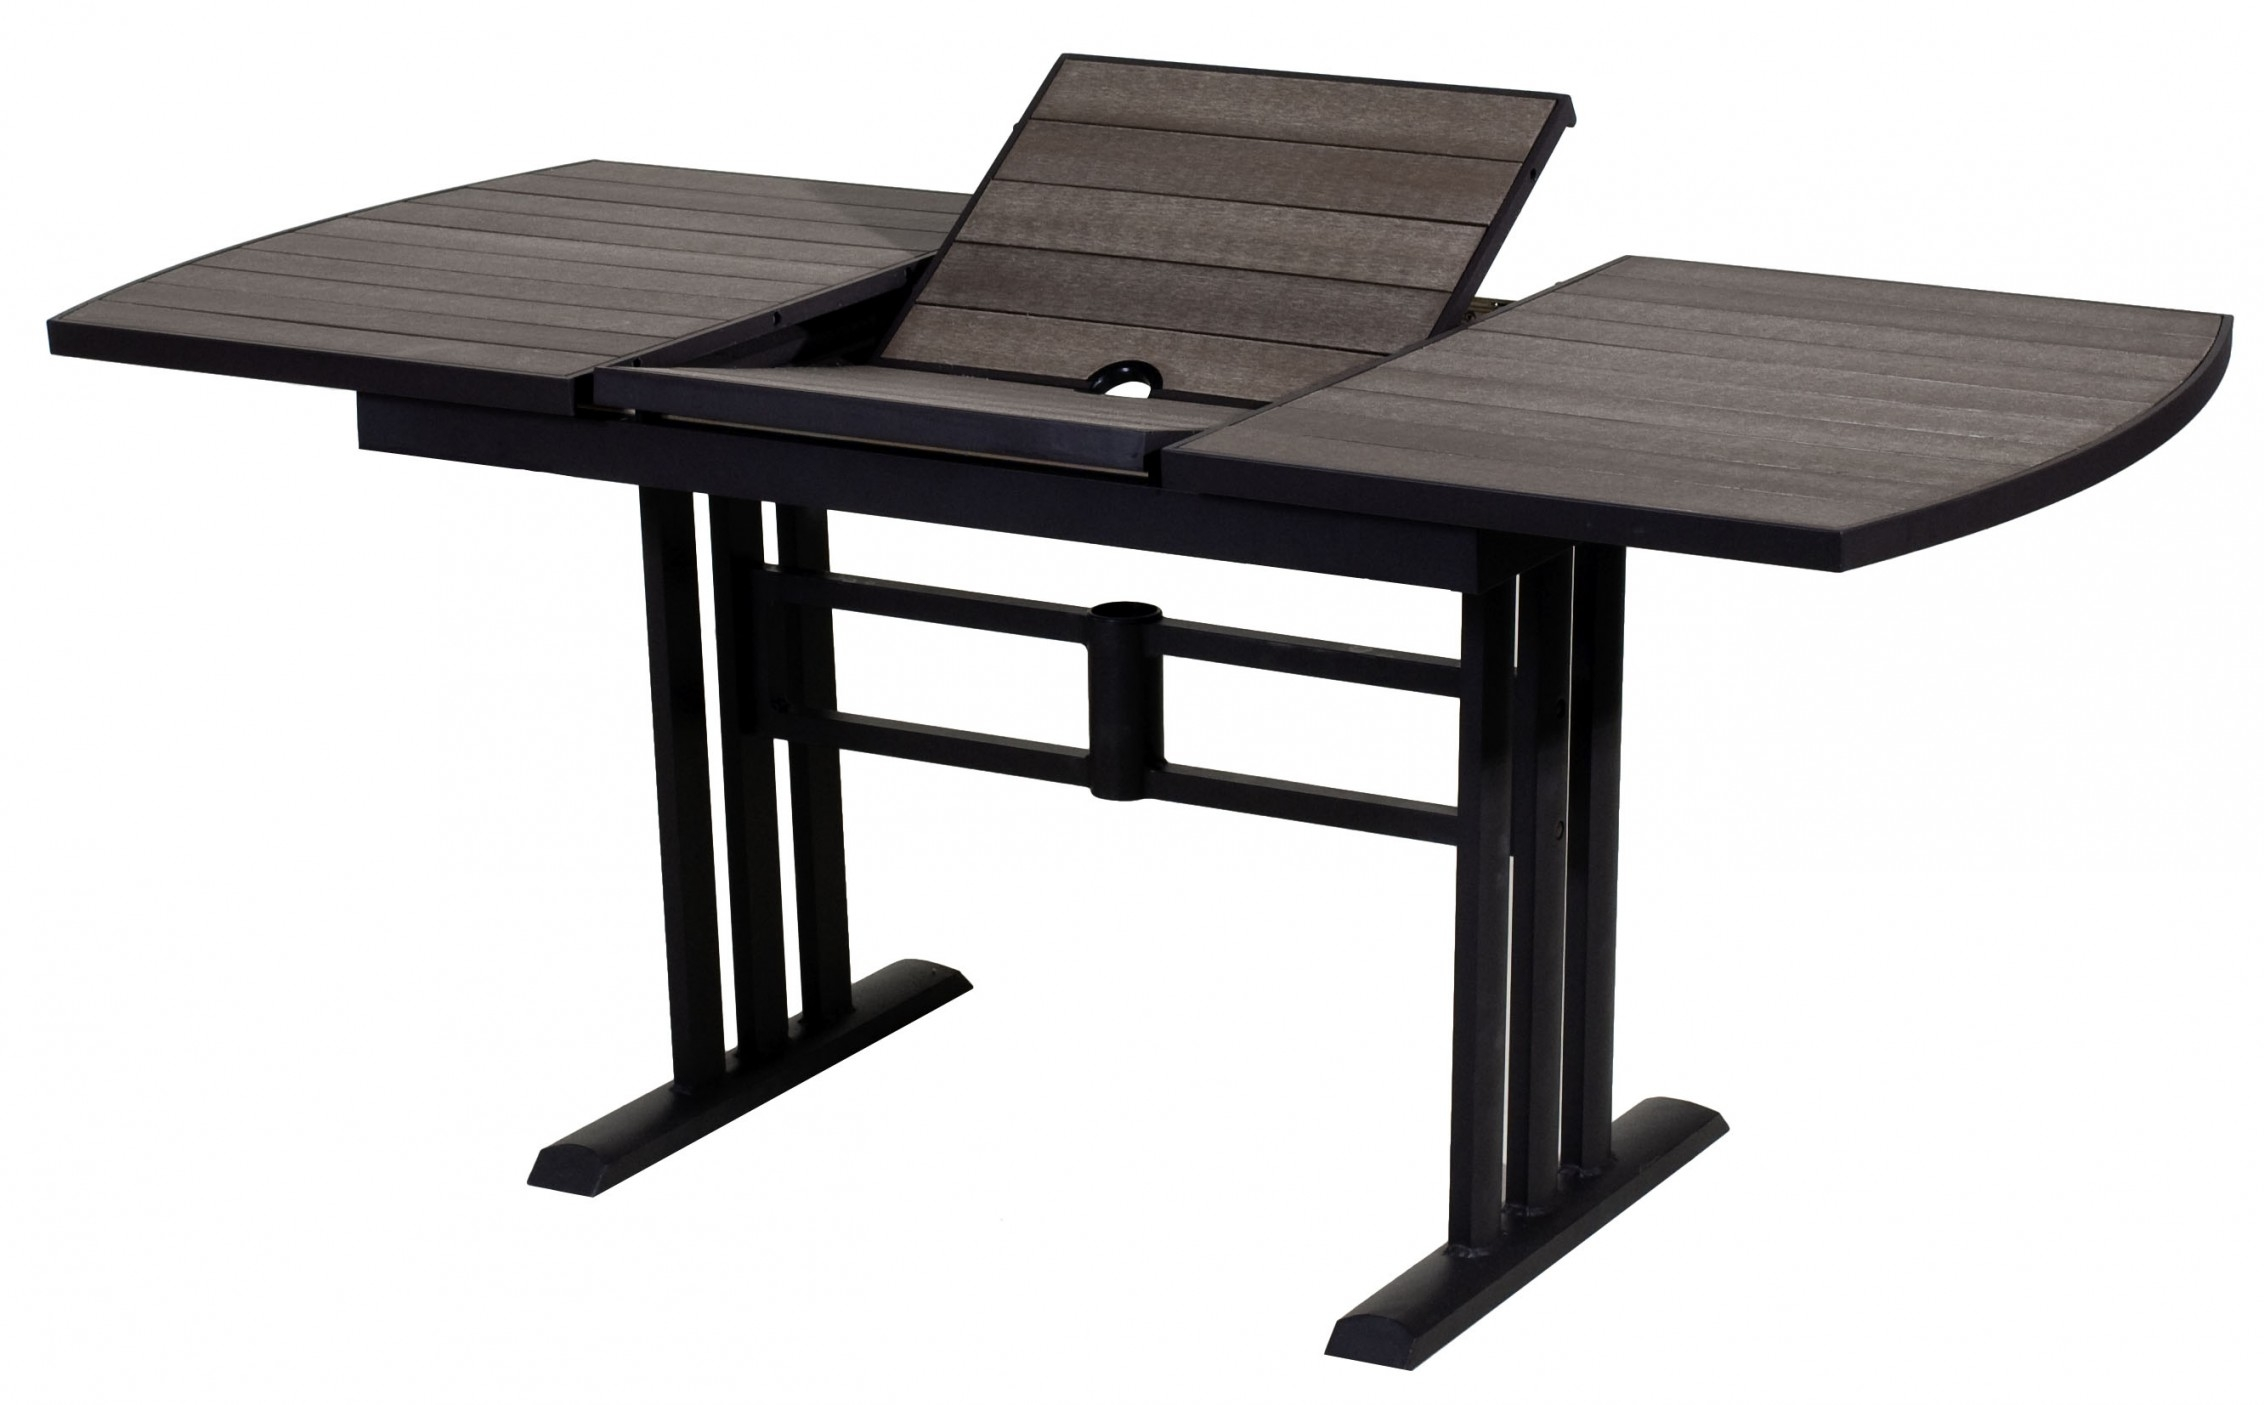 g nial table de jardin extensible pas cher id es de salon de jardin. Black Bedroom Furniture Sets. Home Design Ideas